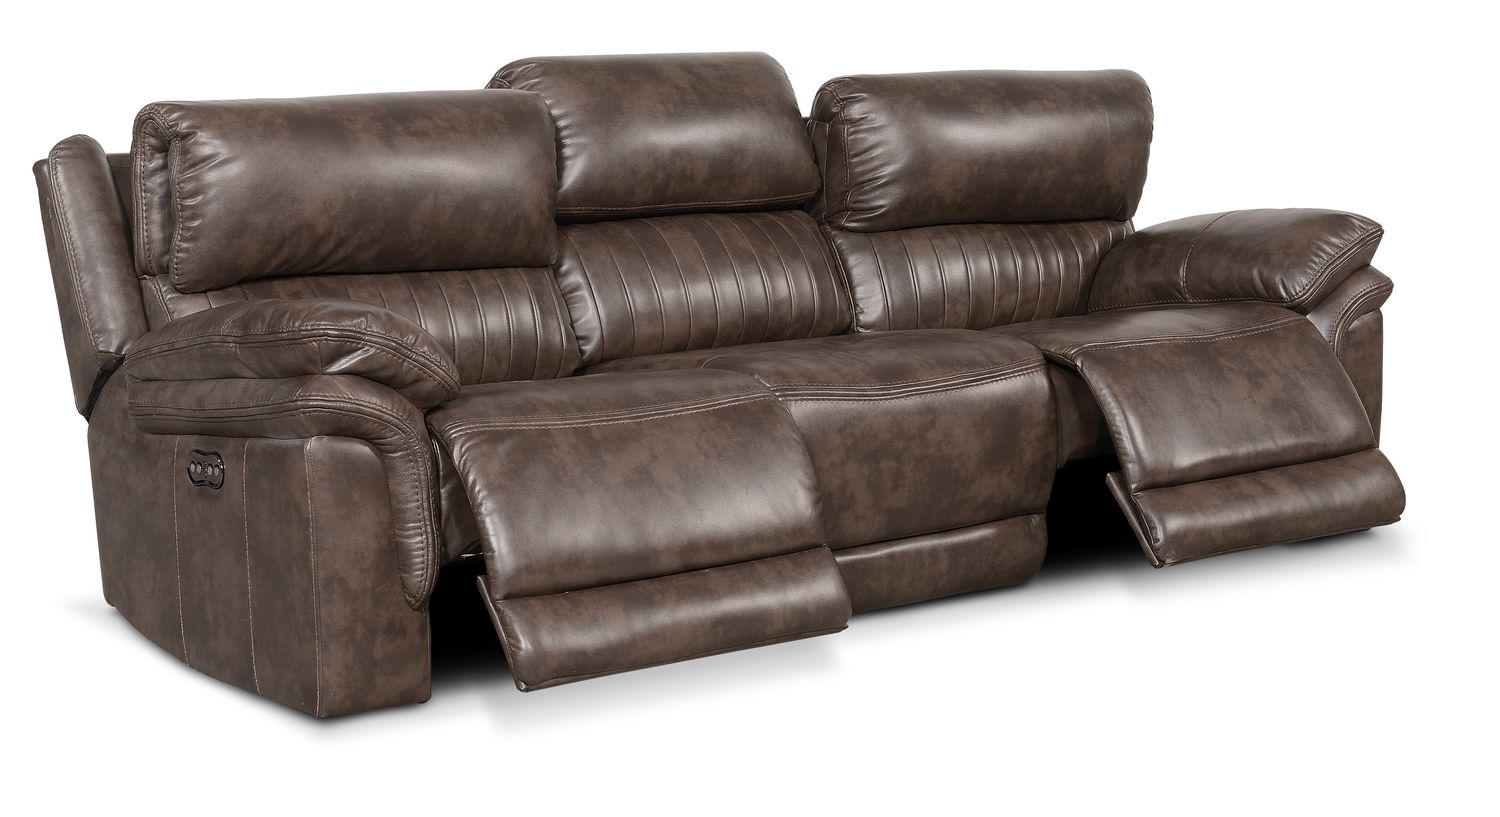 Hover/Touch to Zoom  sc 1 st  Value City Furniture & Monterey 3-Piece Power Reclining Sofa - Brown | Value City Furniture islam-shia.org